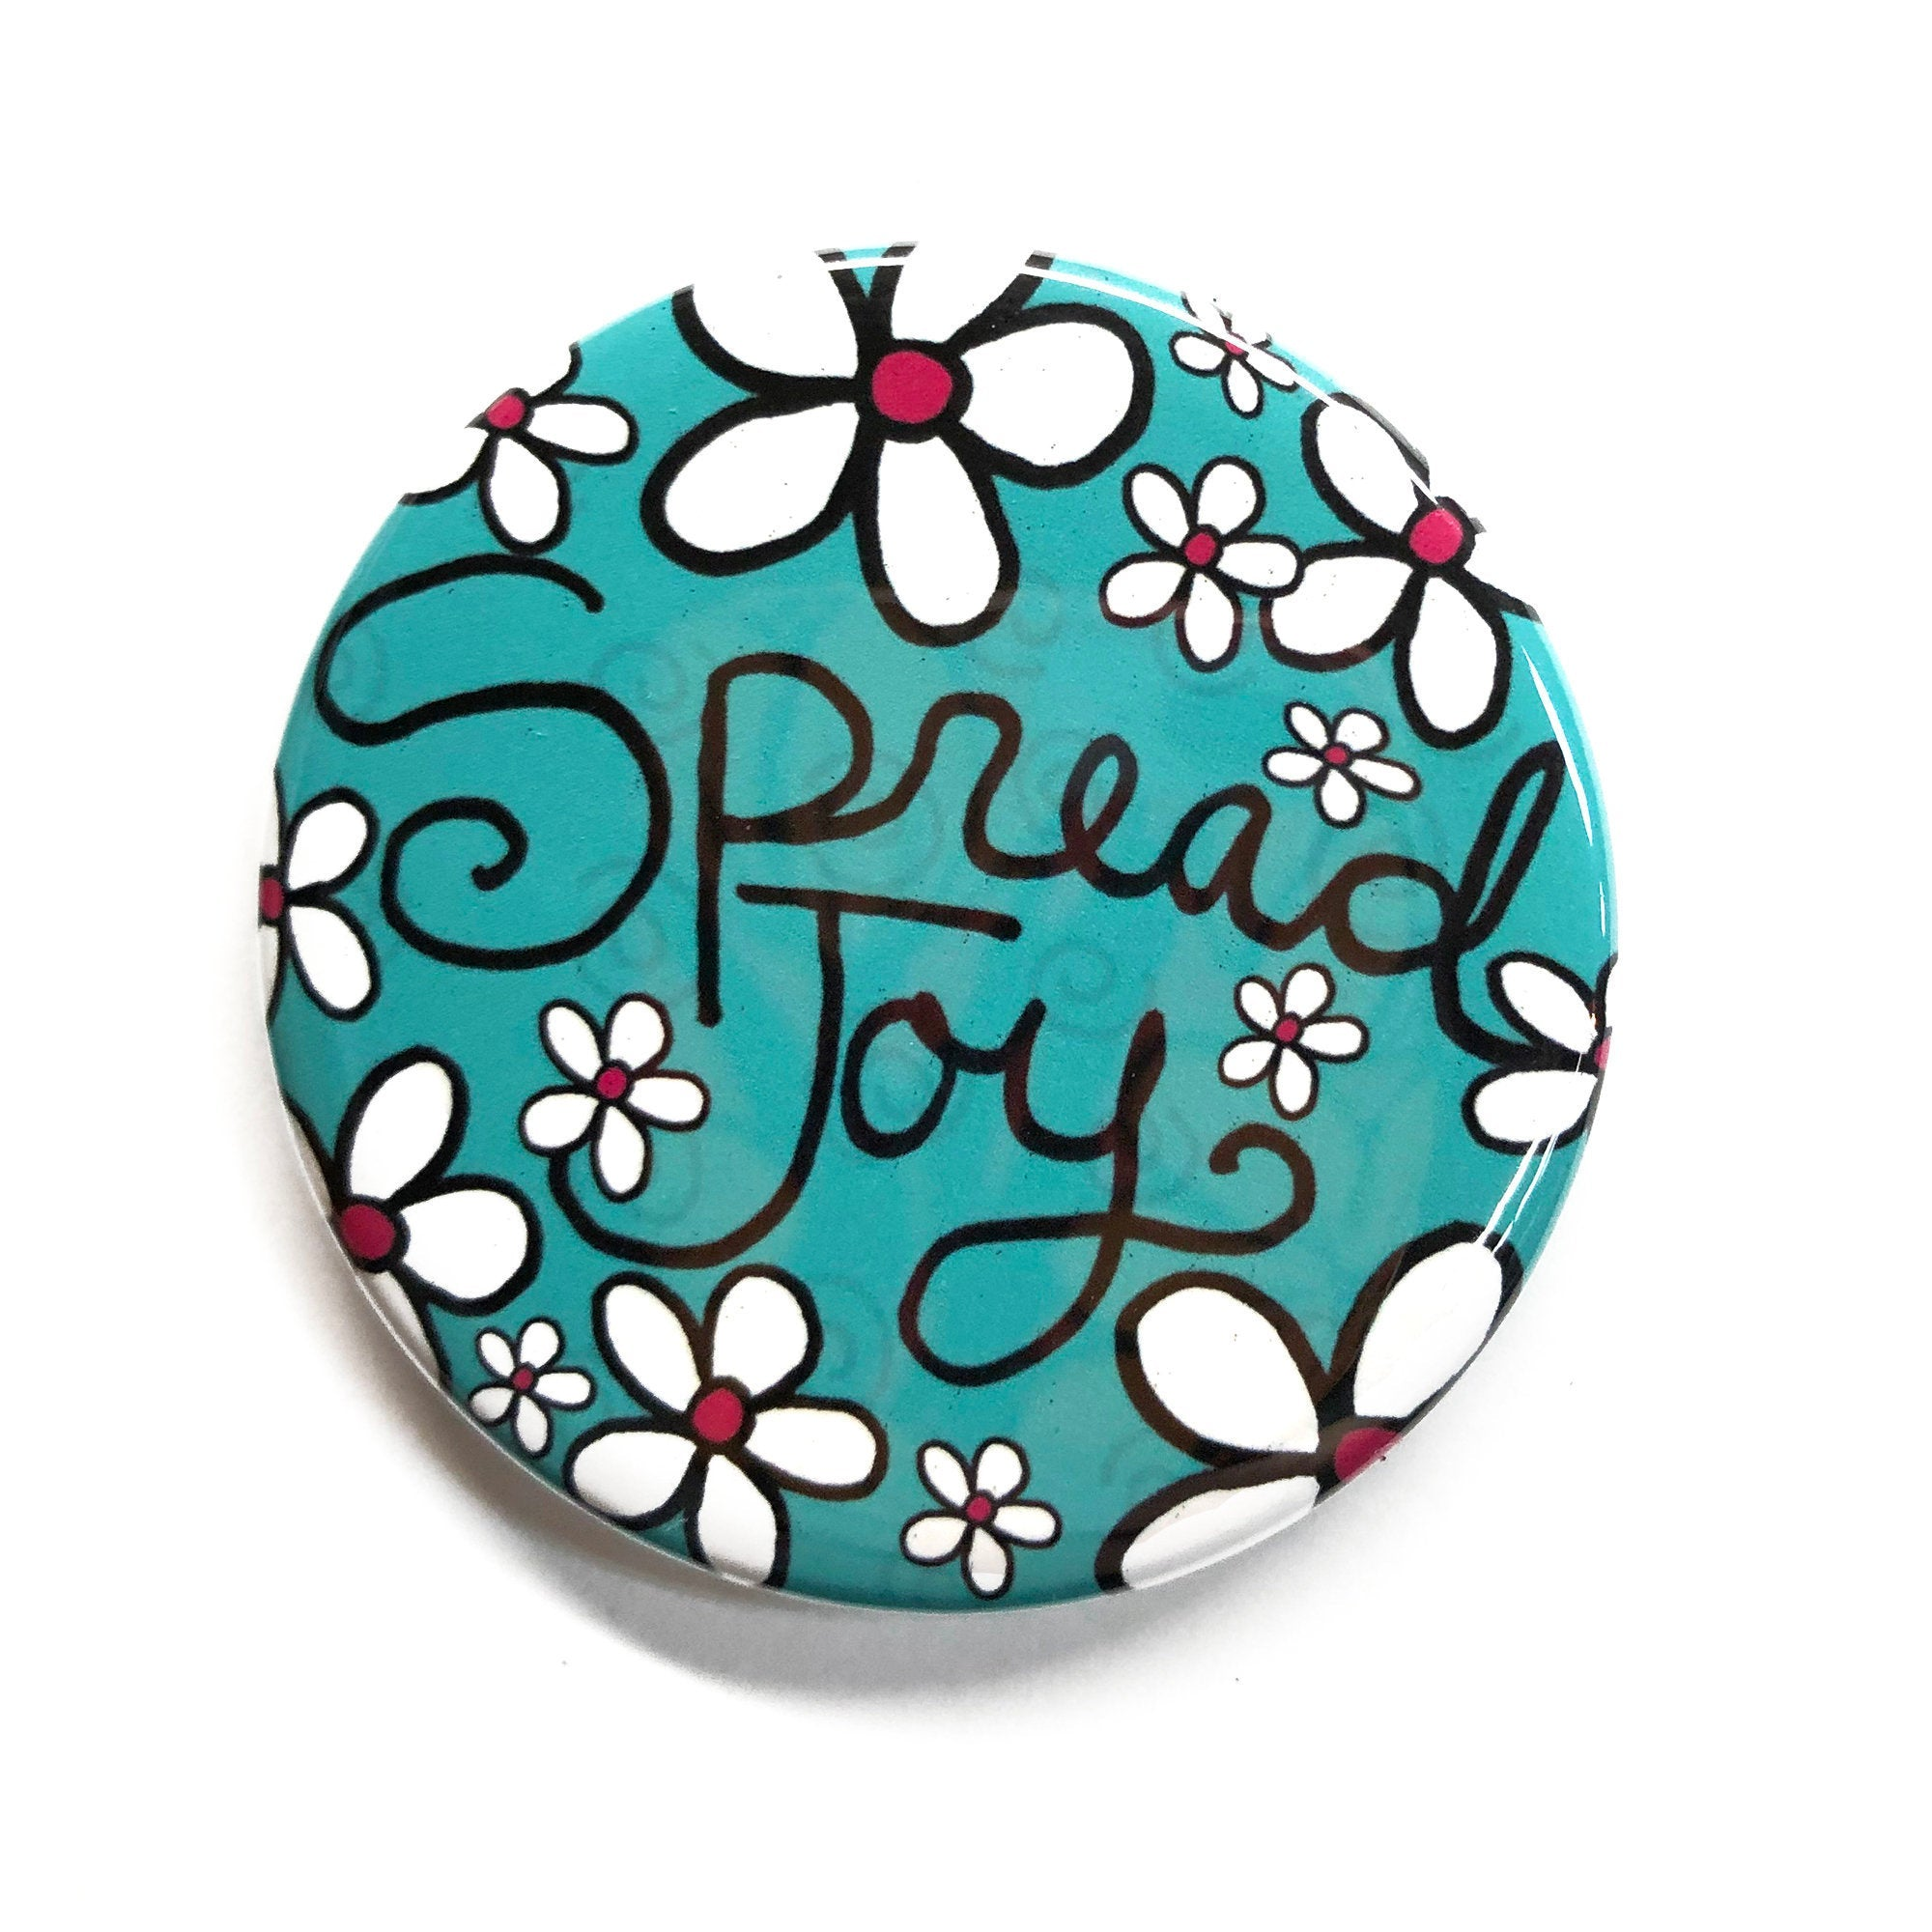 Spread Joy Magnet, Pin Back Button or Pocket Mirror